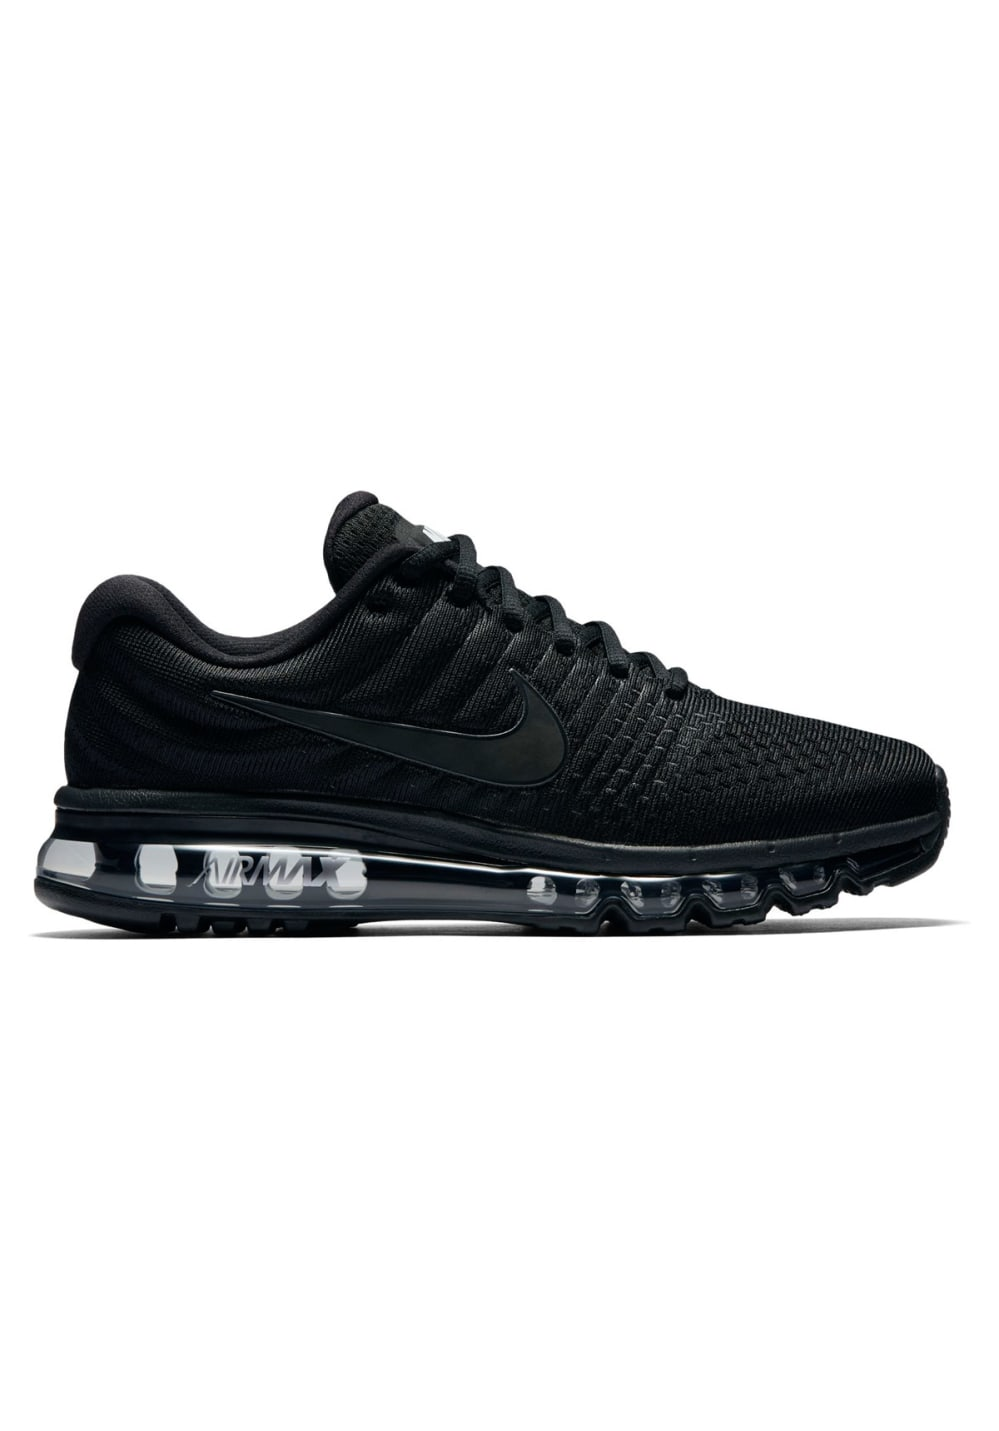 code promo 8794c 09104 Nike Air Max 2017 - Chaussures running pour Homme - Noir